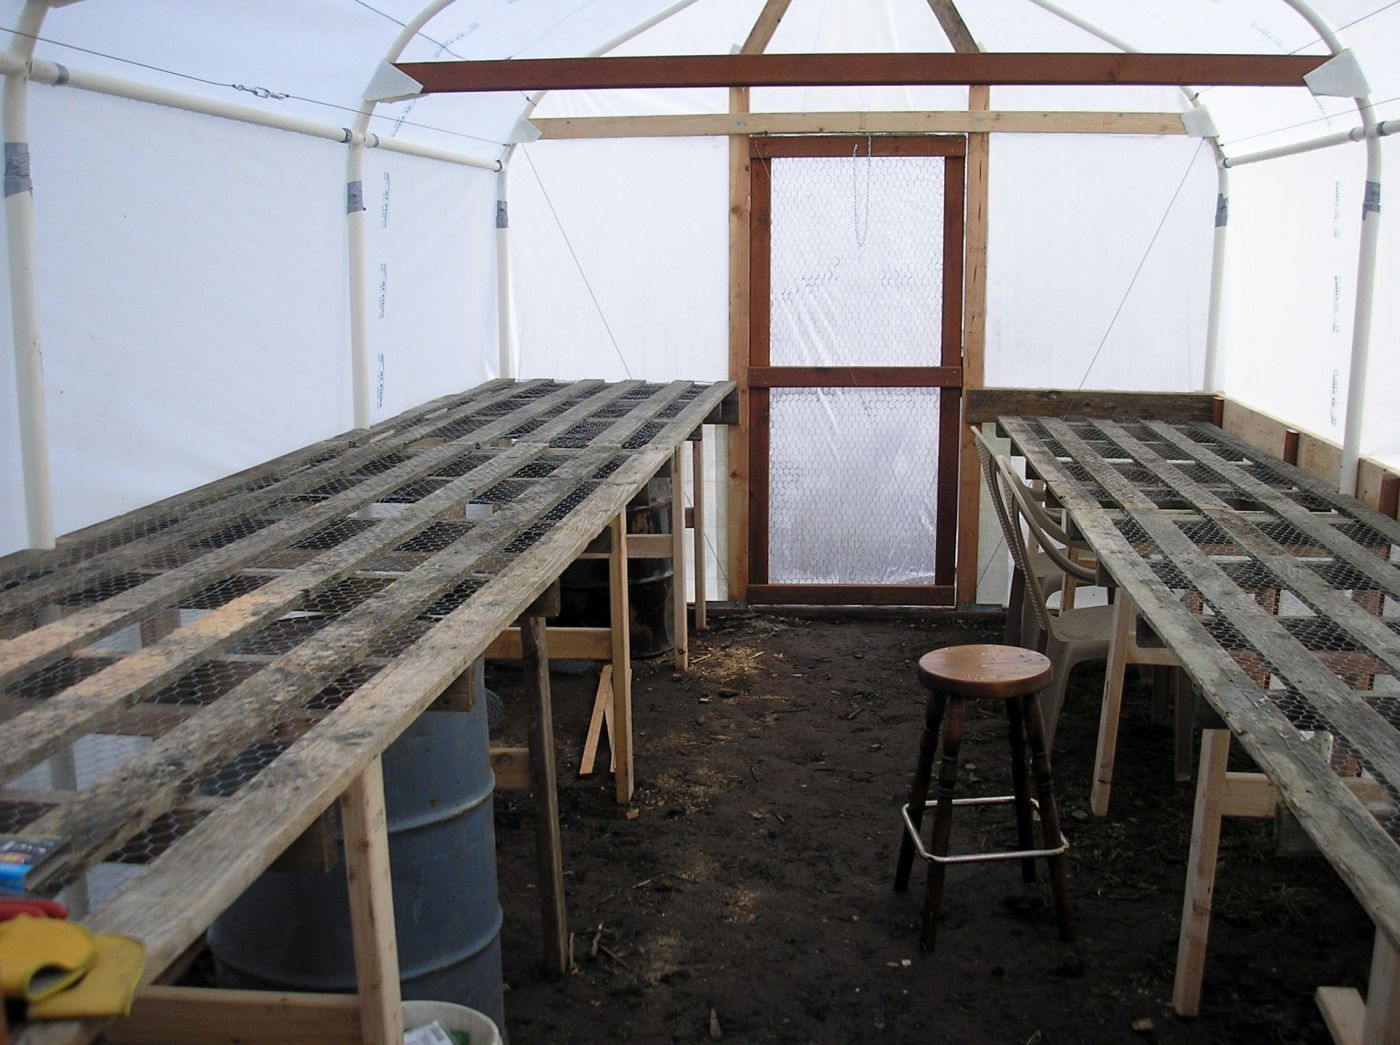 JERRY'S CARPORT TUBE FRAME GREENHOUSE Buy greenhouse